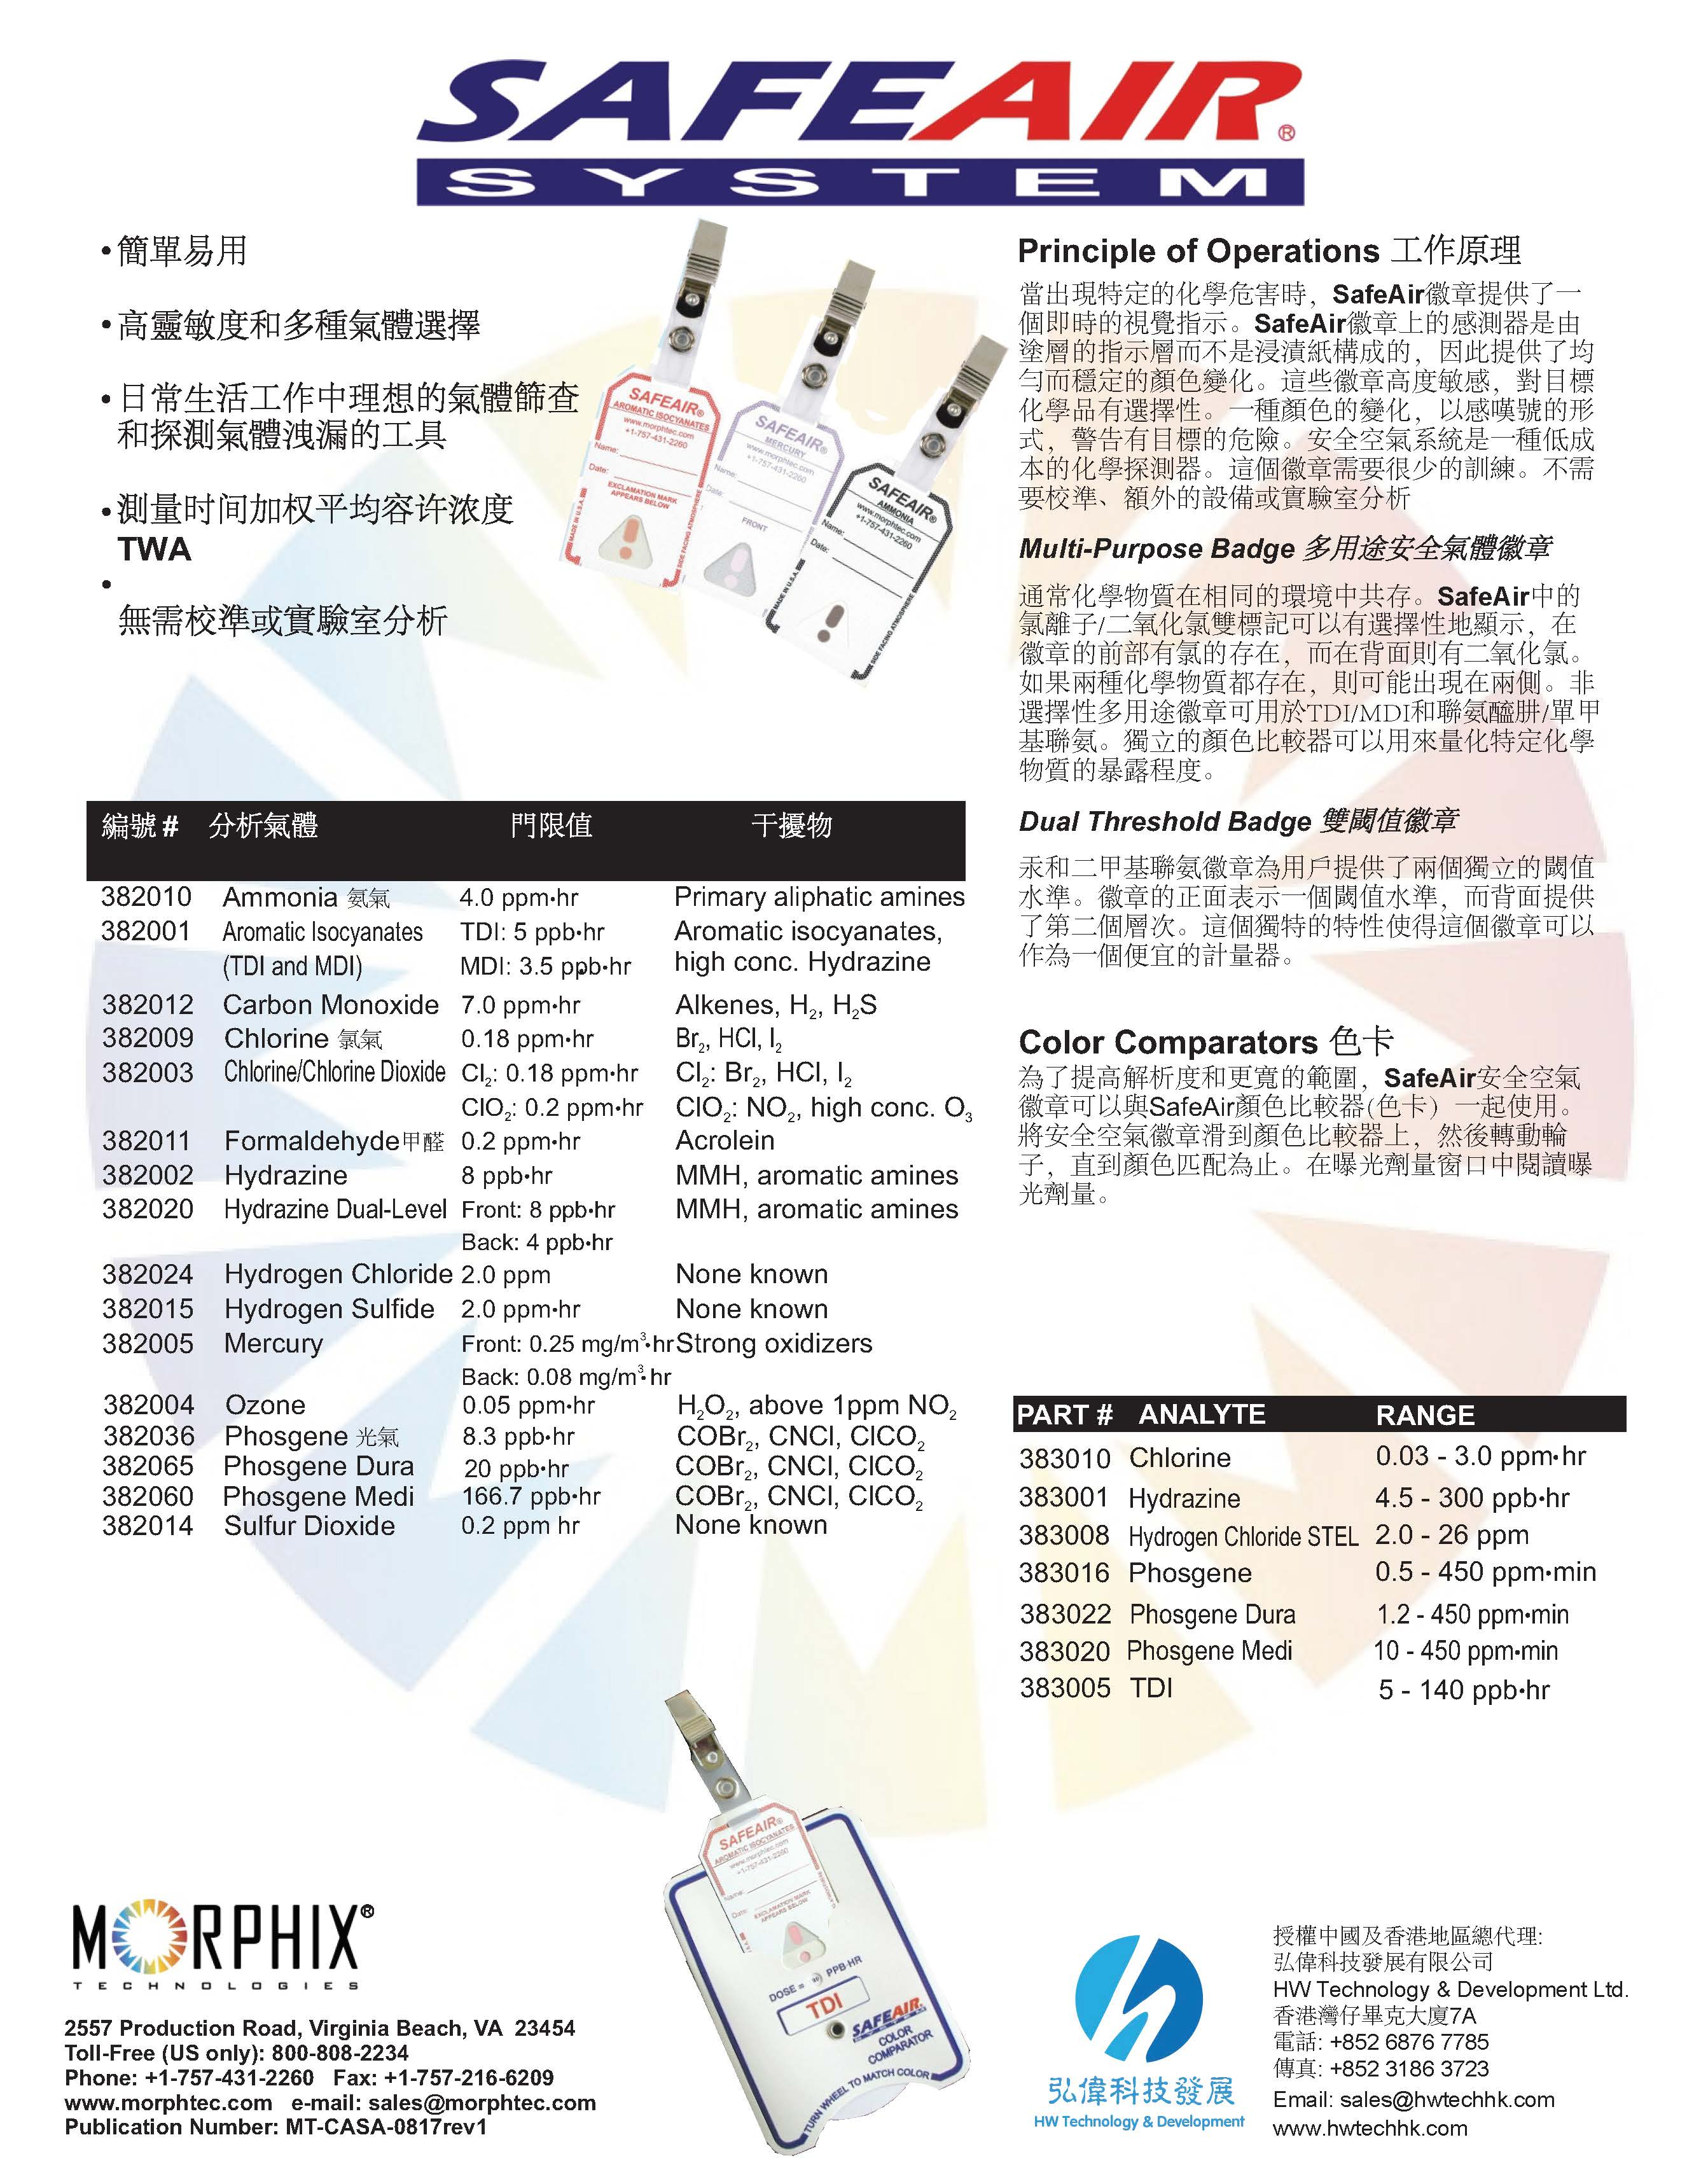 SafeAir Only Brochure-chinese.jpg